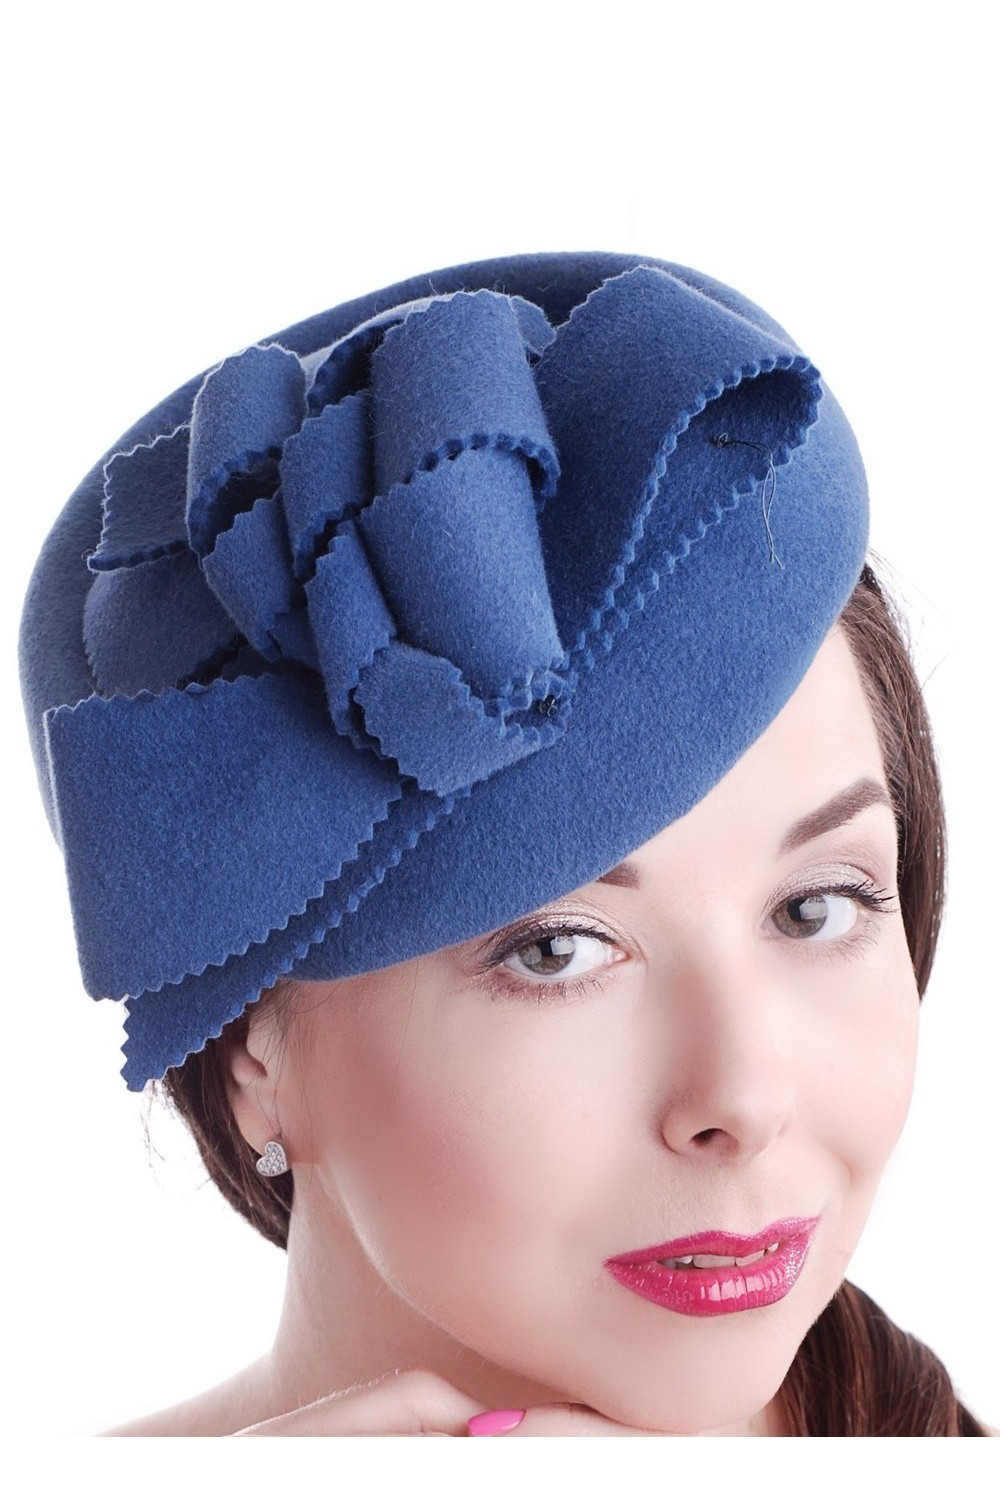 Buy Blue women's felt hat in retro style, Exclusive unique stylish hat for fall or spring